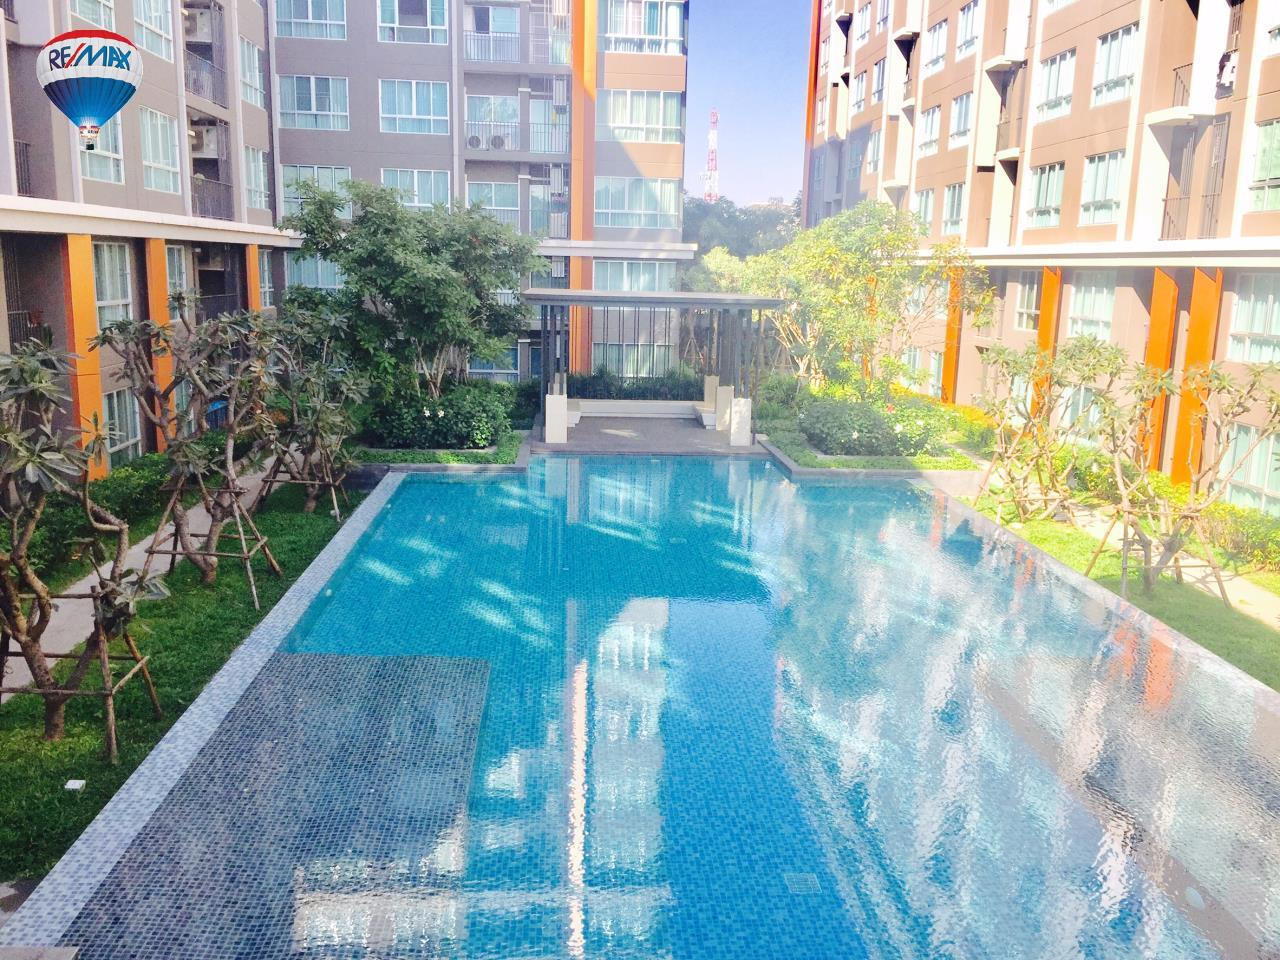 RE/MAX Classic Agency's Condominium for rent, downtown near BigC Super center Chiangrai. 1